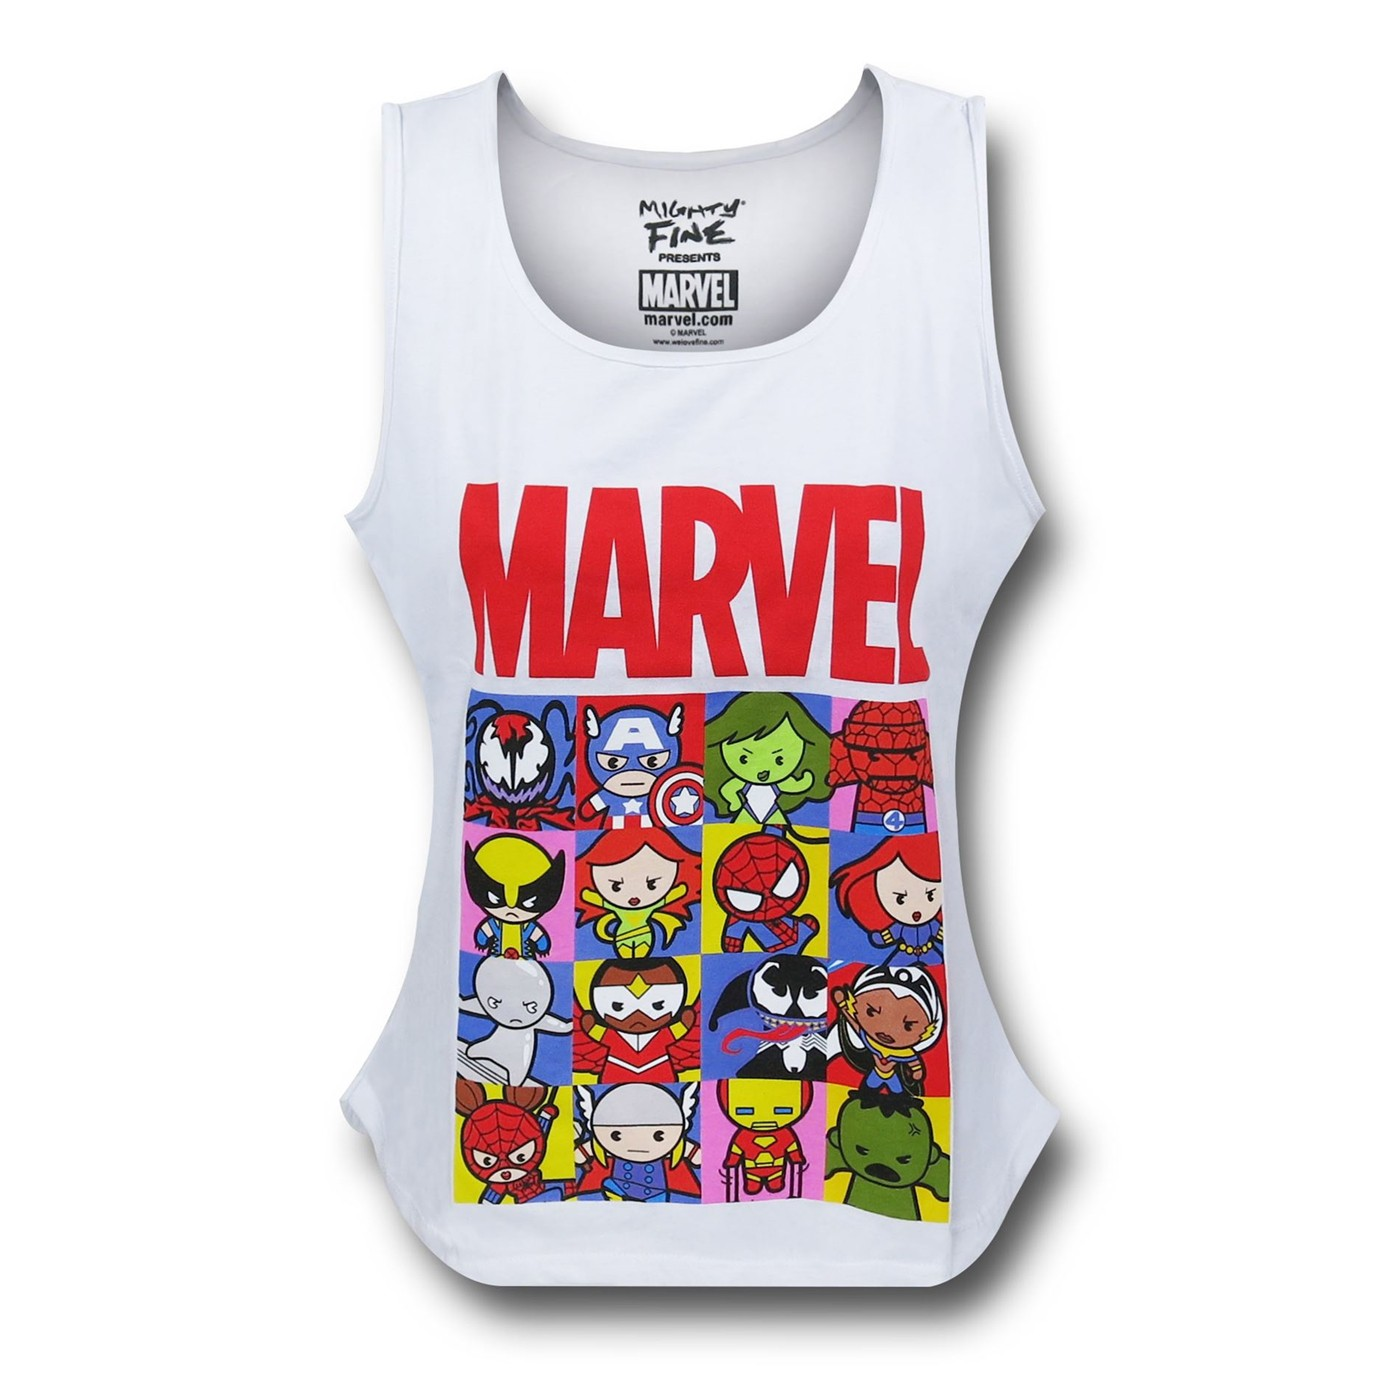 Marvel Kawaii Grid Women's Tank Top